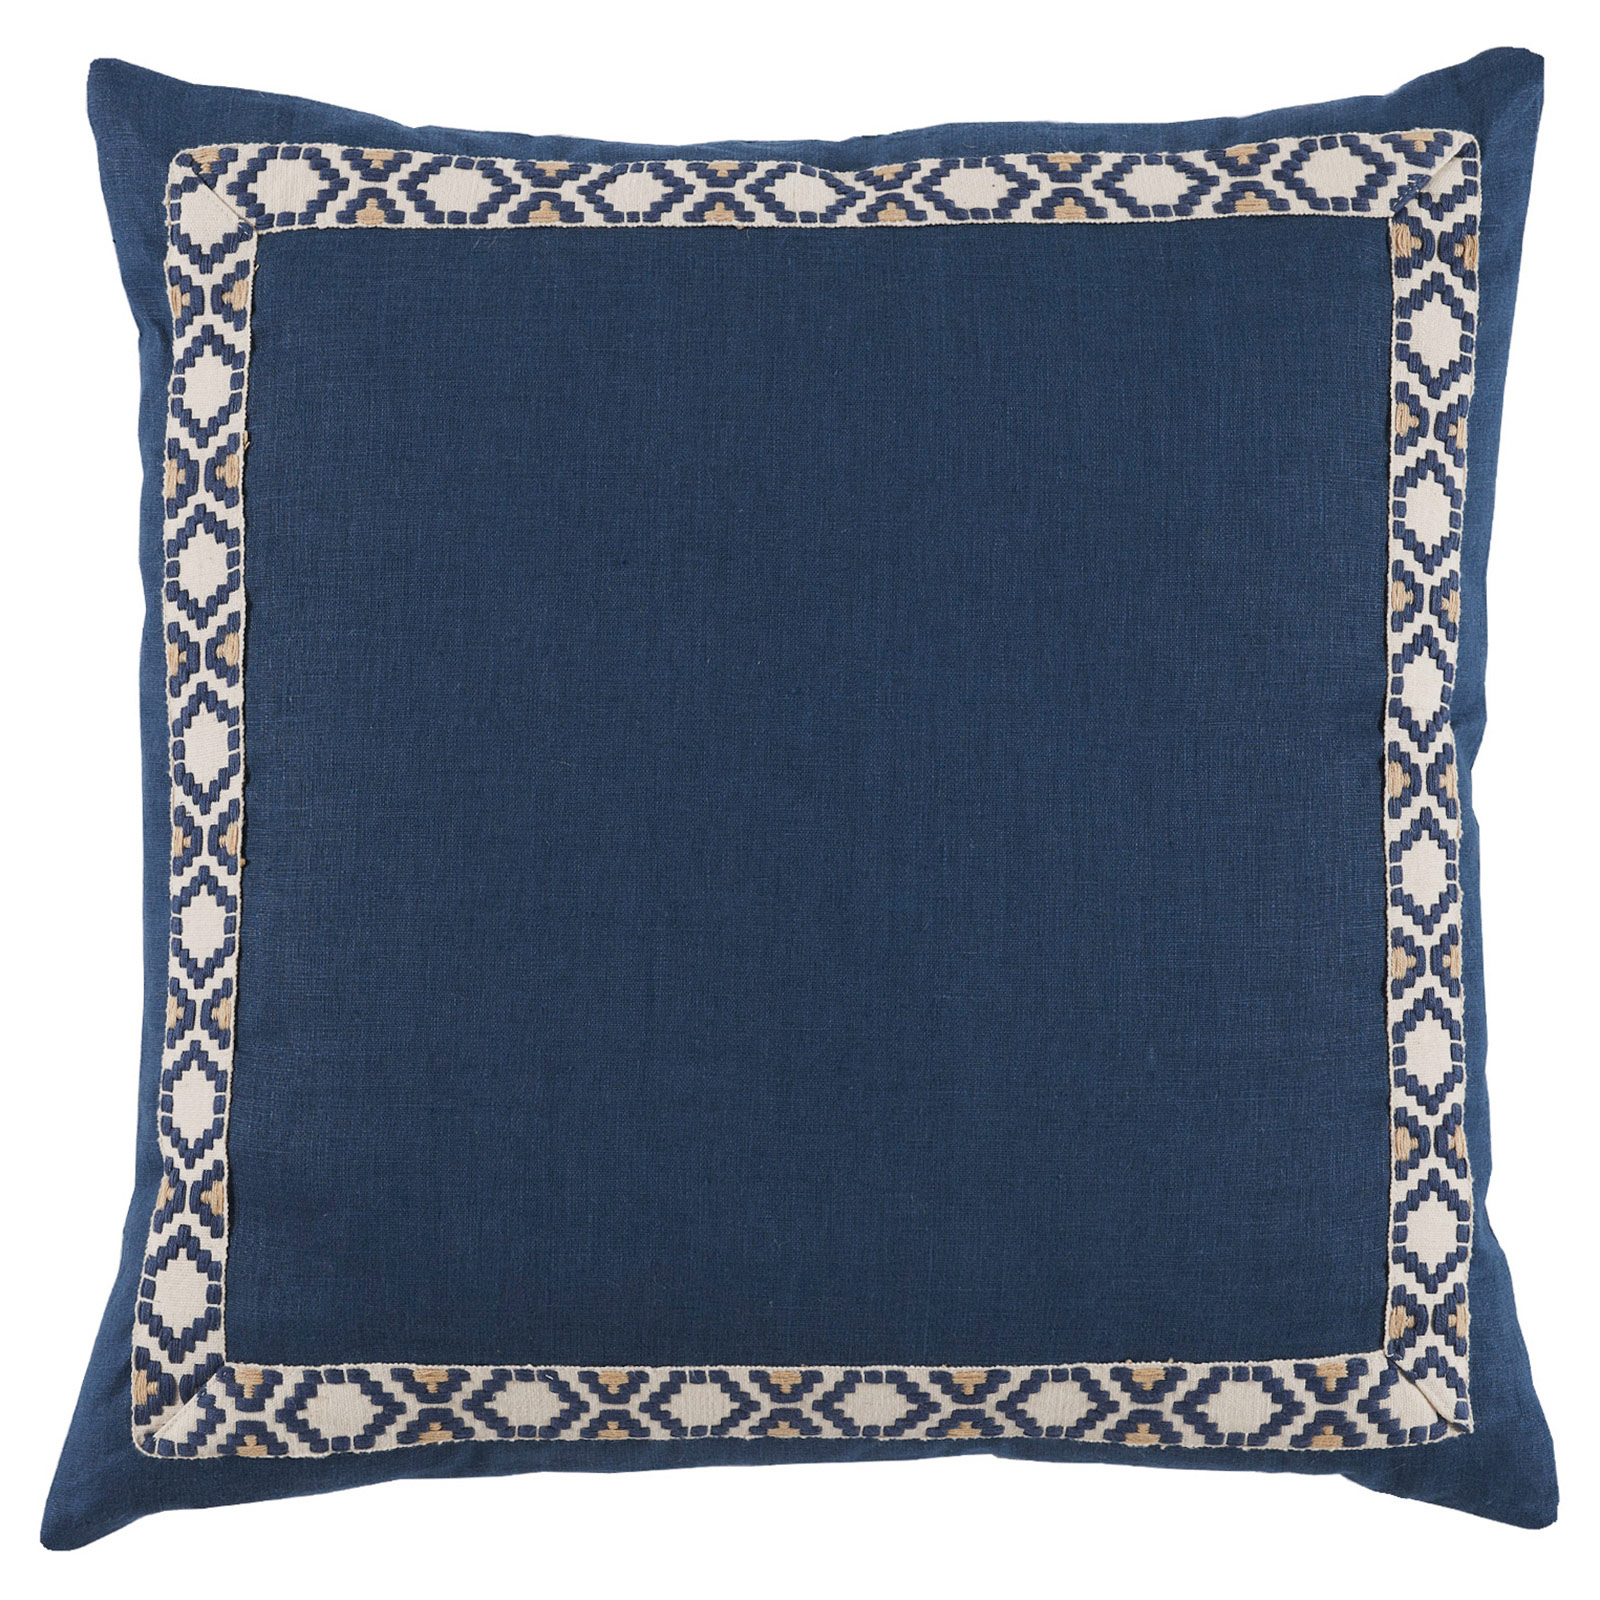 Kaia Global Navy Linen Trim Band Pillow - 24x24